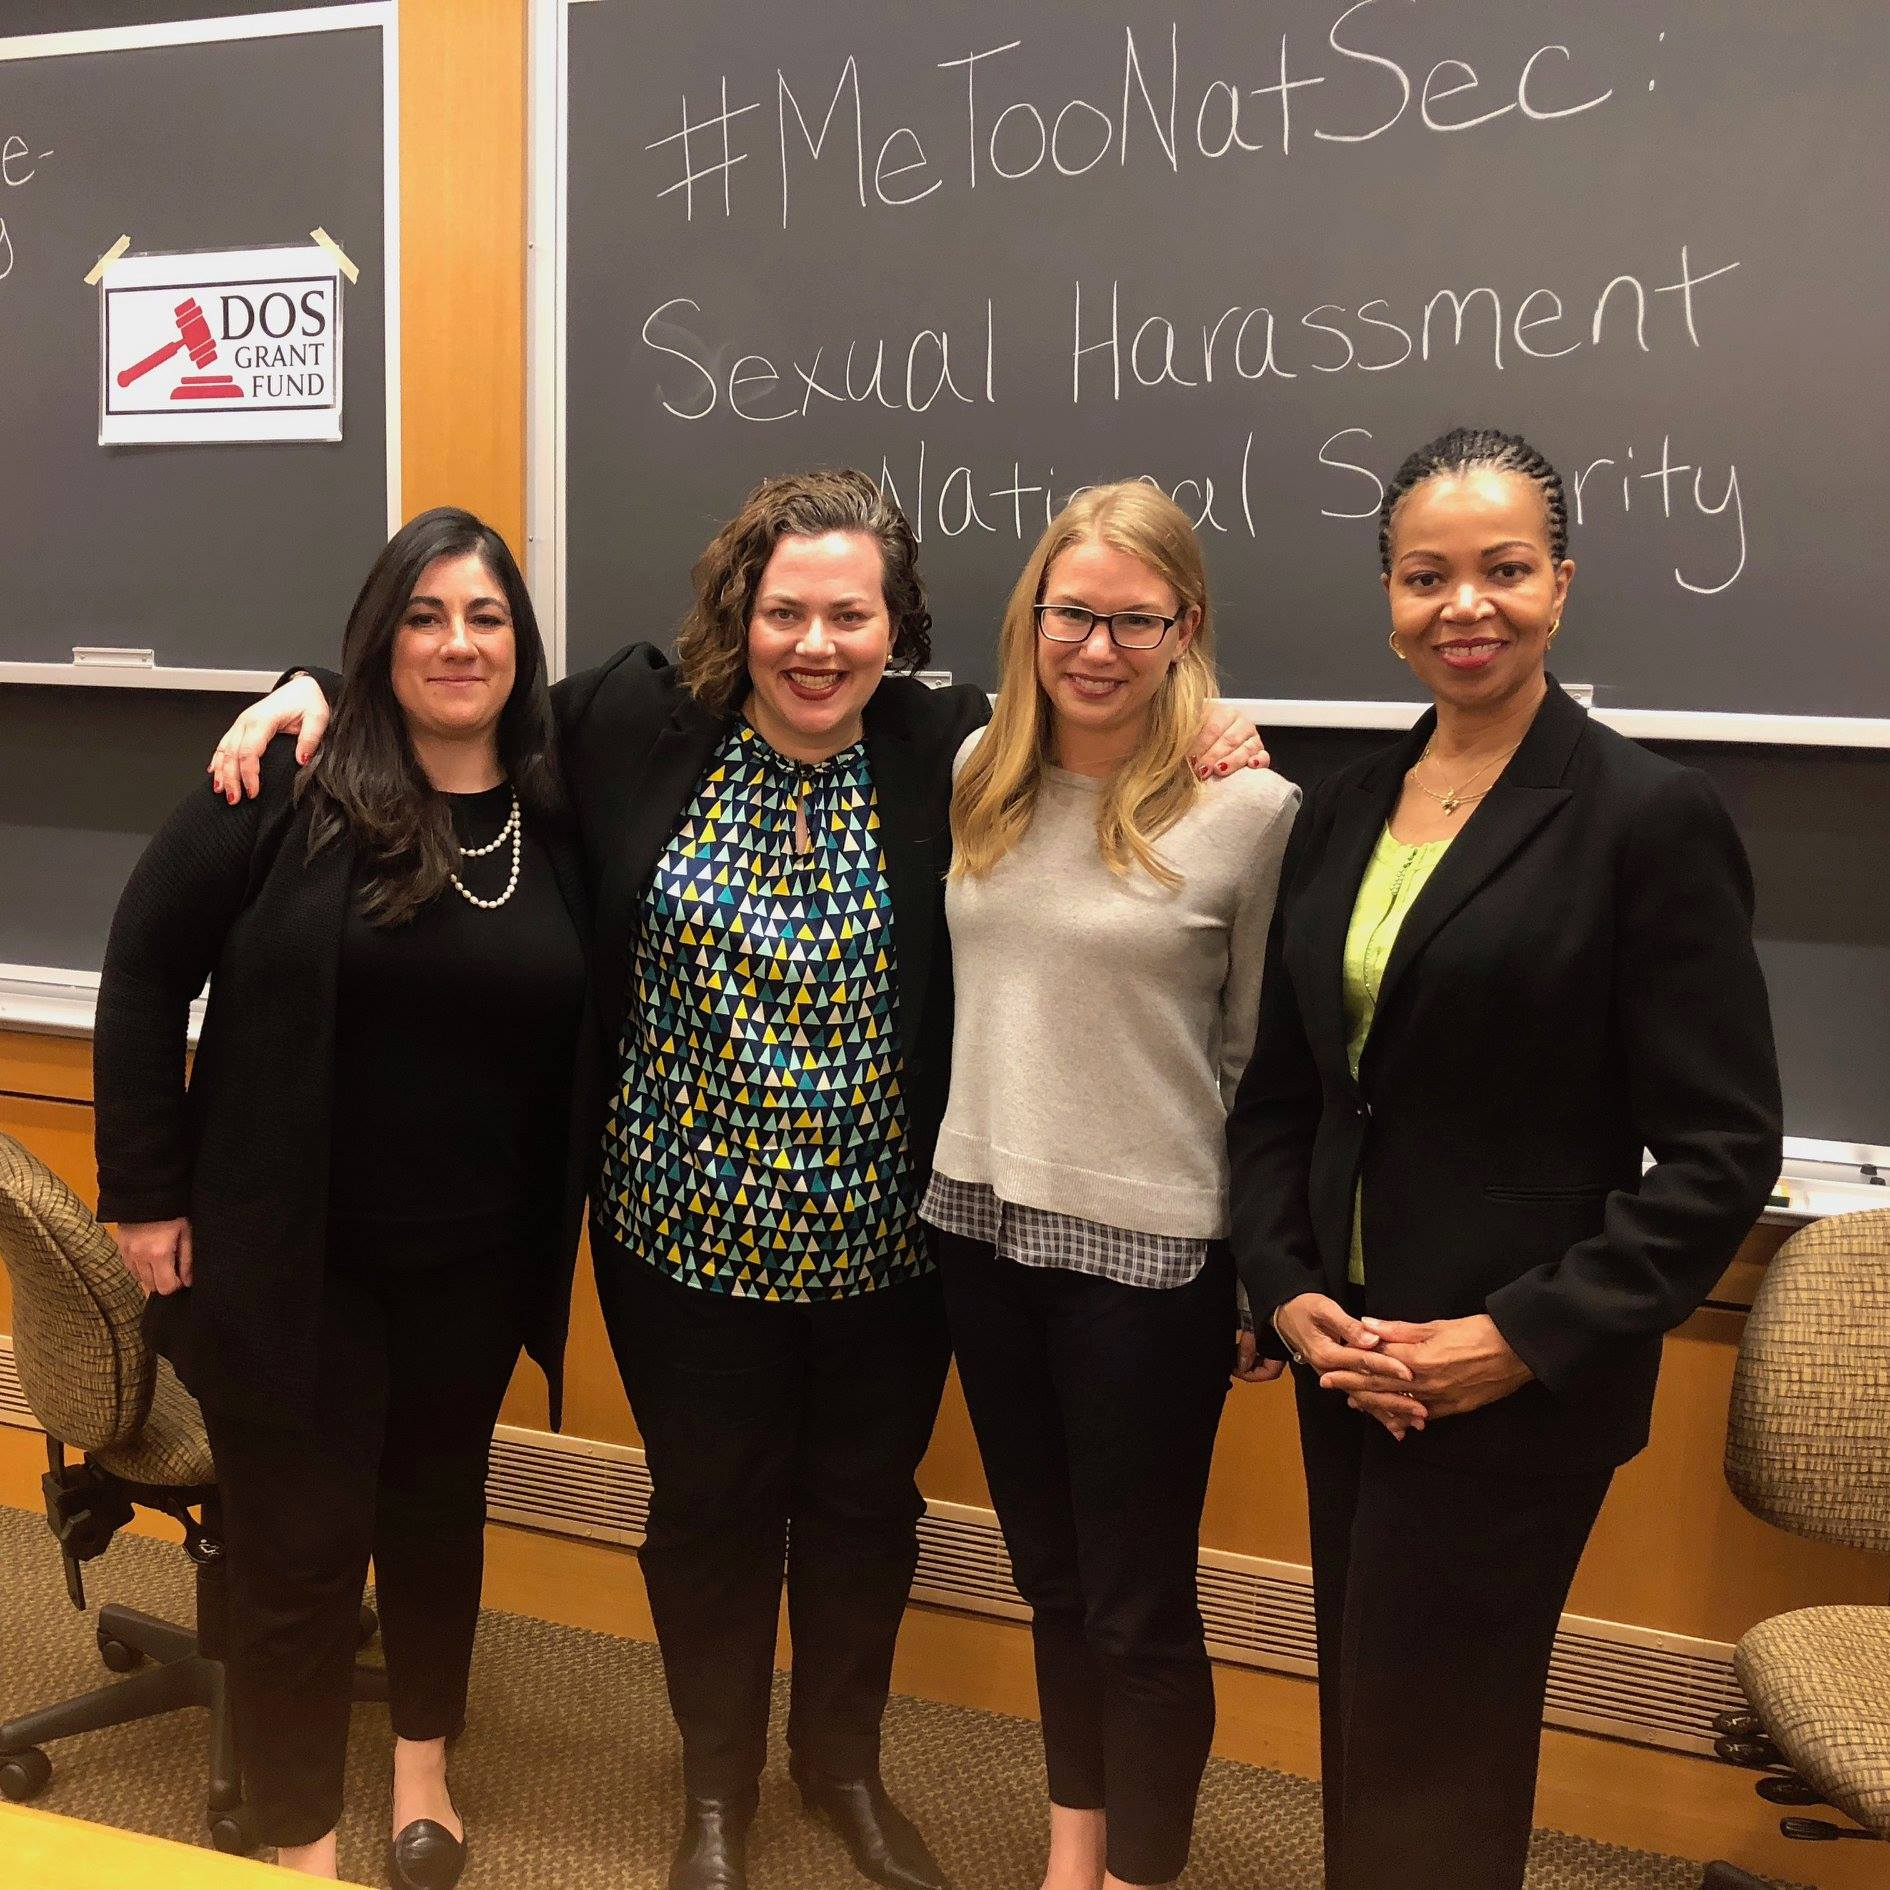 #MeTooNatSec: Sexual Harassment in National Security - Purple Campaign President Ally Coll joined former U.S Ambassador, Gina Abercrombie-Winstanley, former State Department official and co-author of the #MeTooNatSec letter, Jenna Ben-Yehuda, Chan Zuckerberg Initiative Policy & Advocacy Fellow and former Obama Administration official, Mira Patel at Harvard Law School in a discussion on addressing sexual harassment within national security and what we must do to create harassment-free workplaces, both at home and abroad.